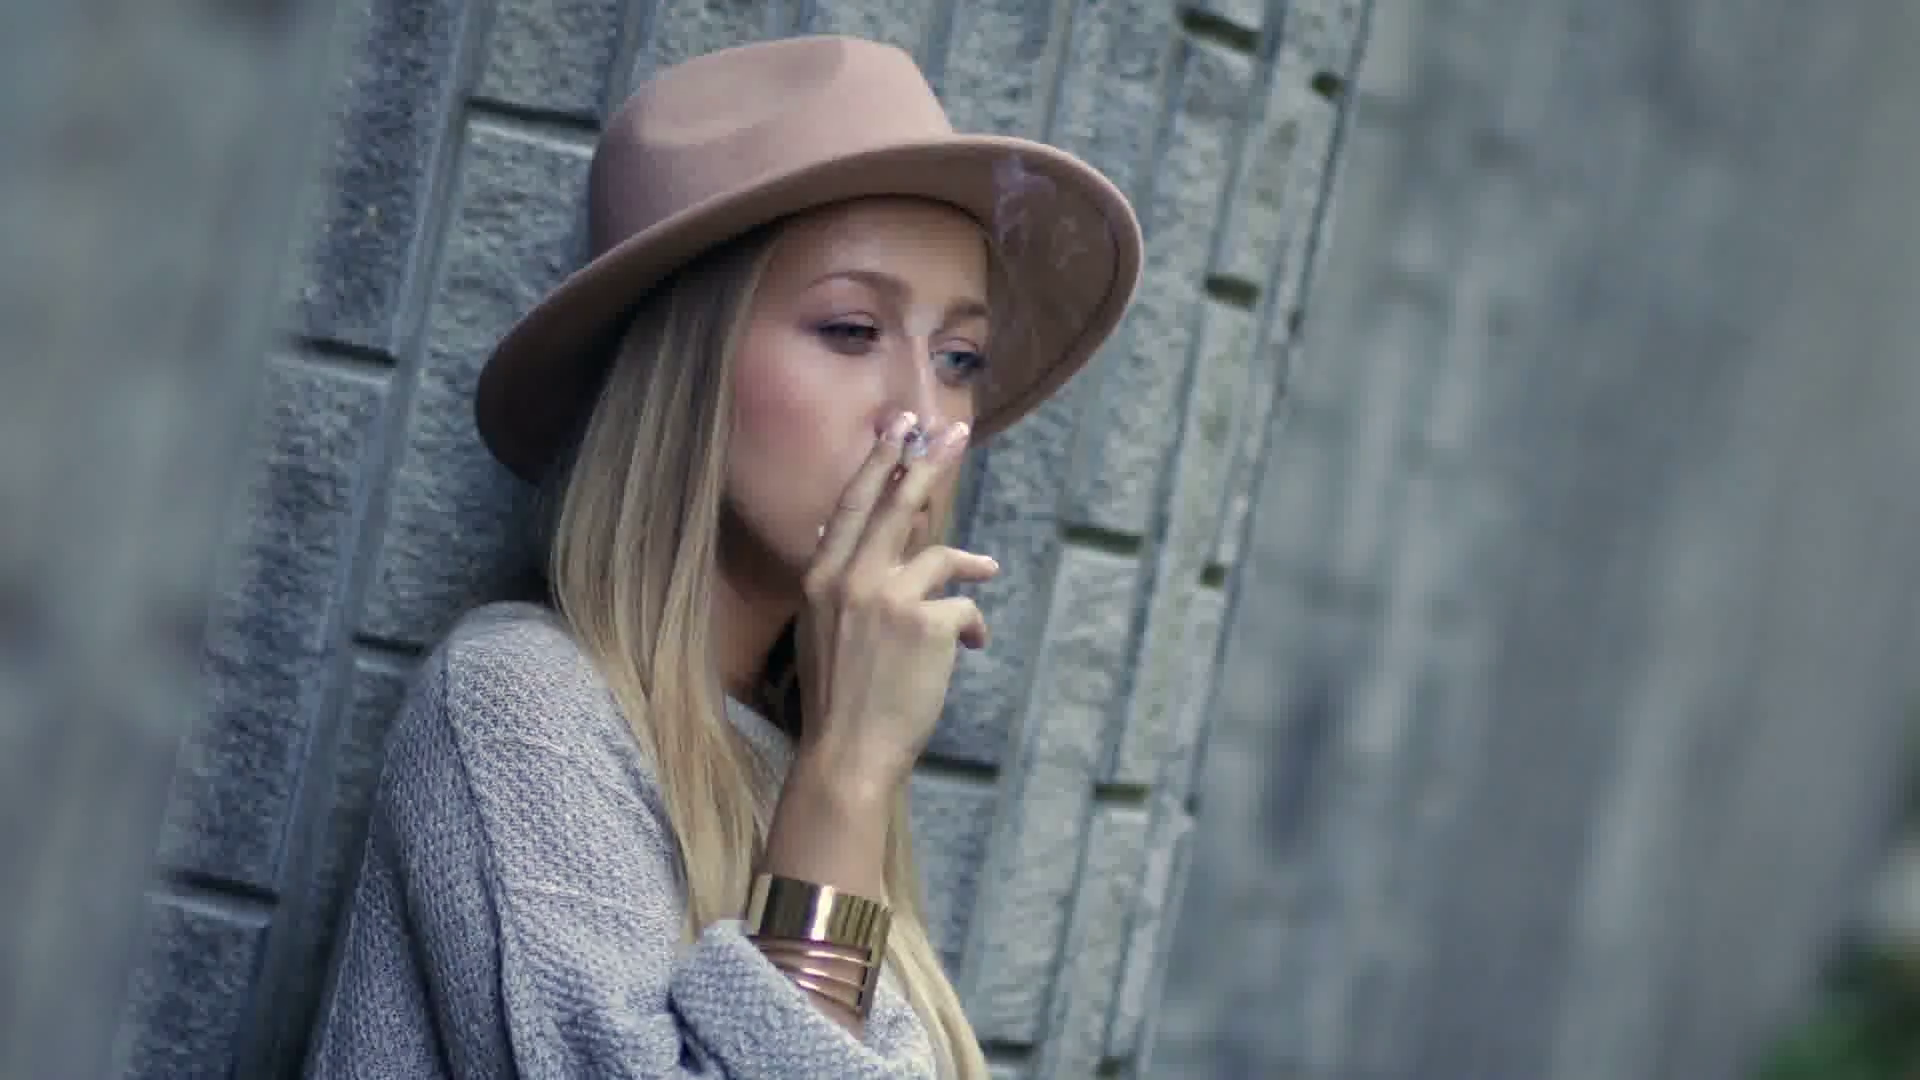 sad-lonely-woman-smoking-cigarette-and-thinking_btzjy9kes_thumbnail-full01